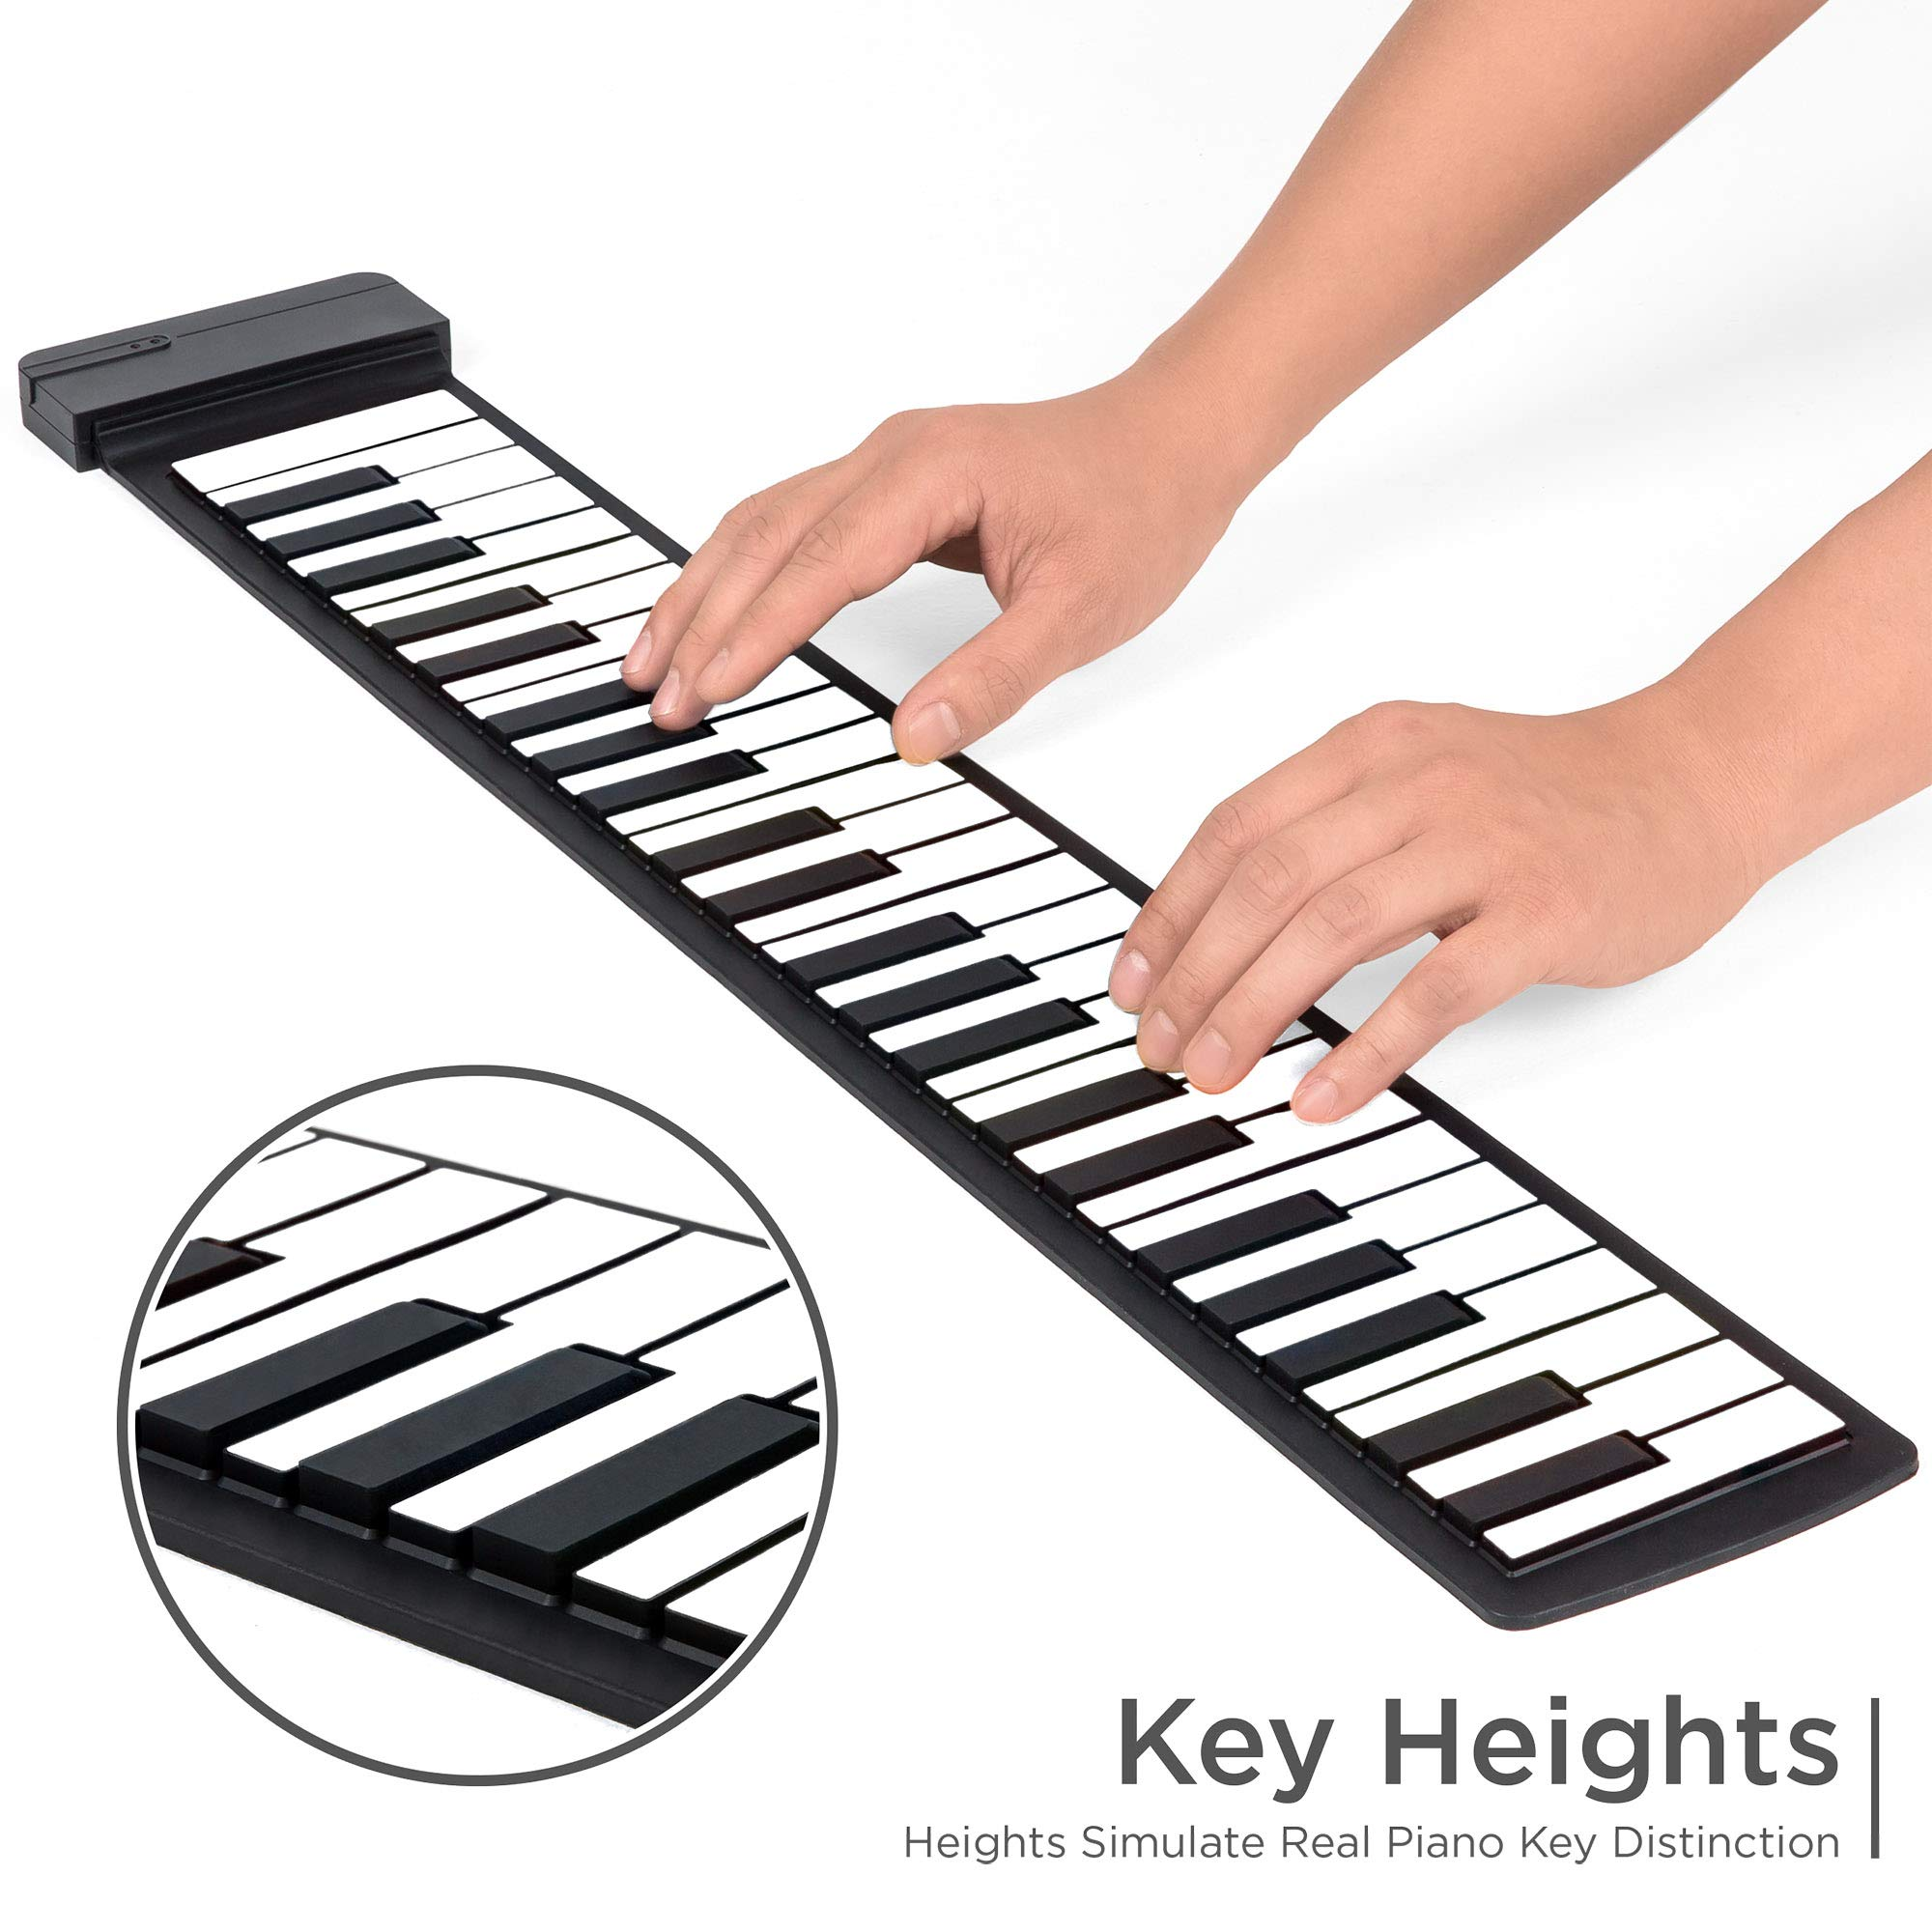 Best Choice Products Kids 49-Key Portable Flexible Roll-Up Piano Keyboard Musical Educational Toy Instrument w/Learn-To-Play App Game, Bluetooth Phone Pairing, Note Labels, USB Charging - White by Best Choice Products (Image #4)